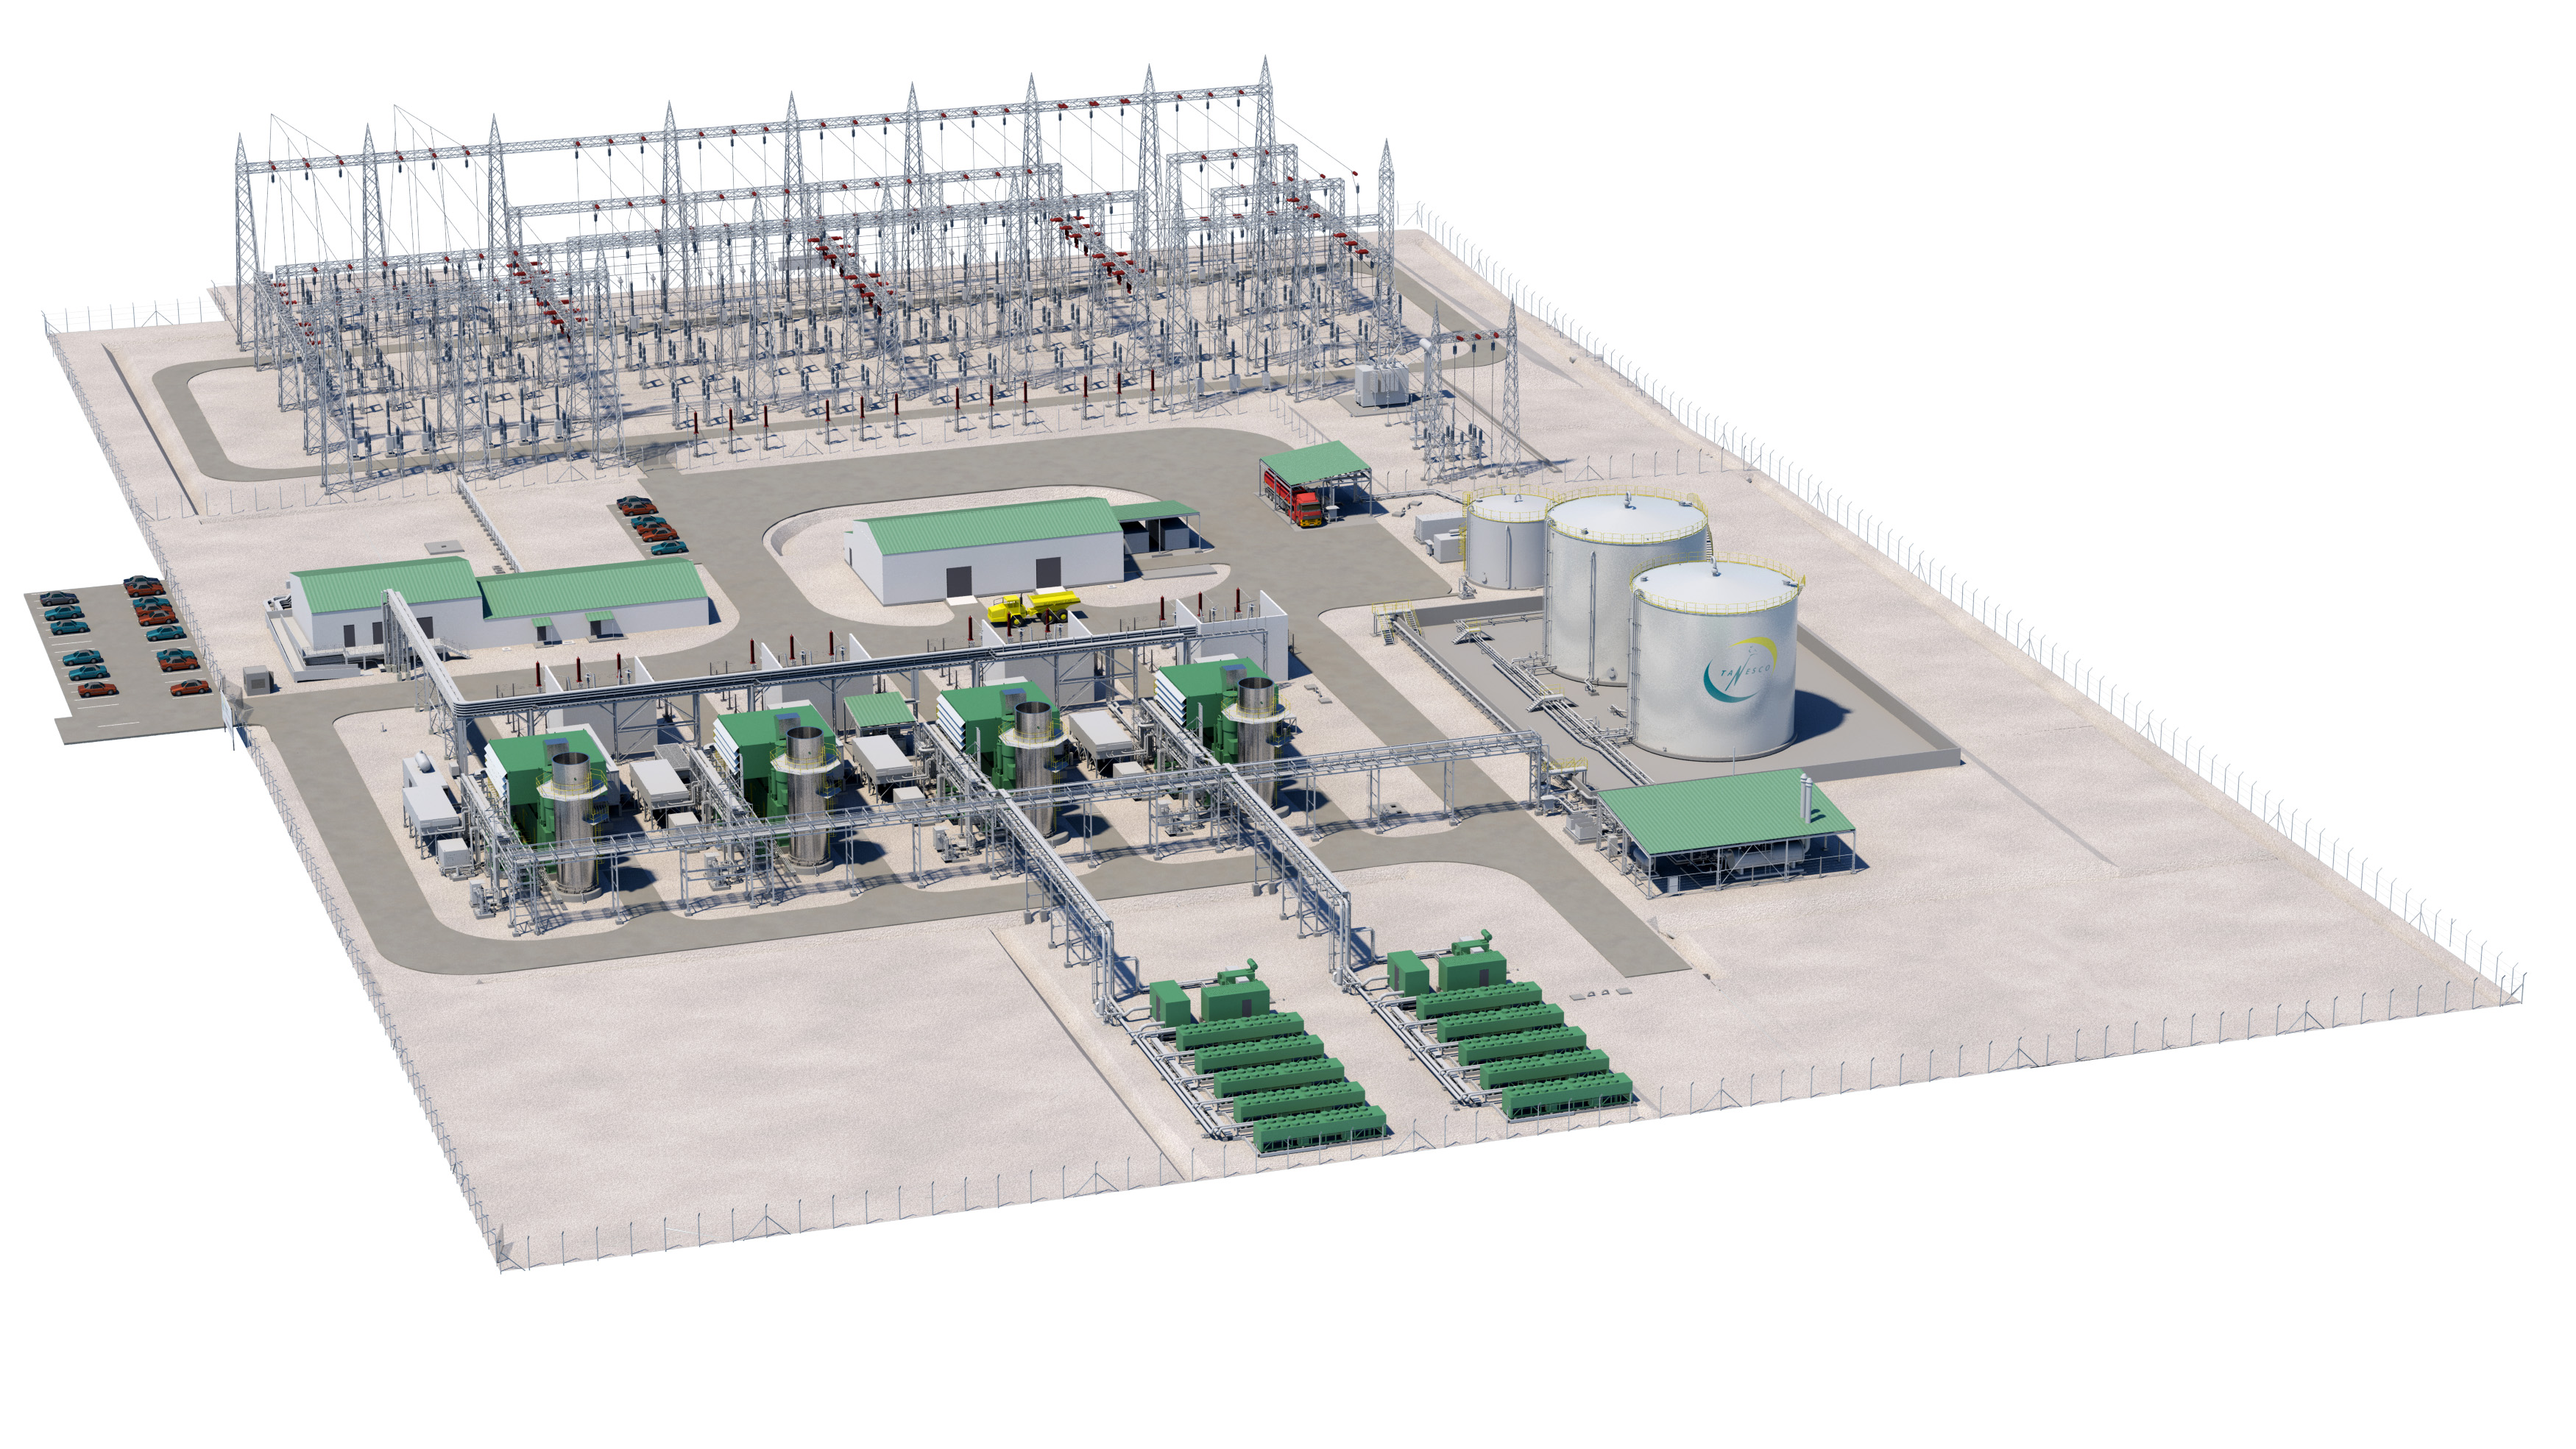 Full design engineering for 105 MW gas turbine power plant Ibese